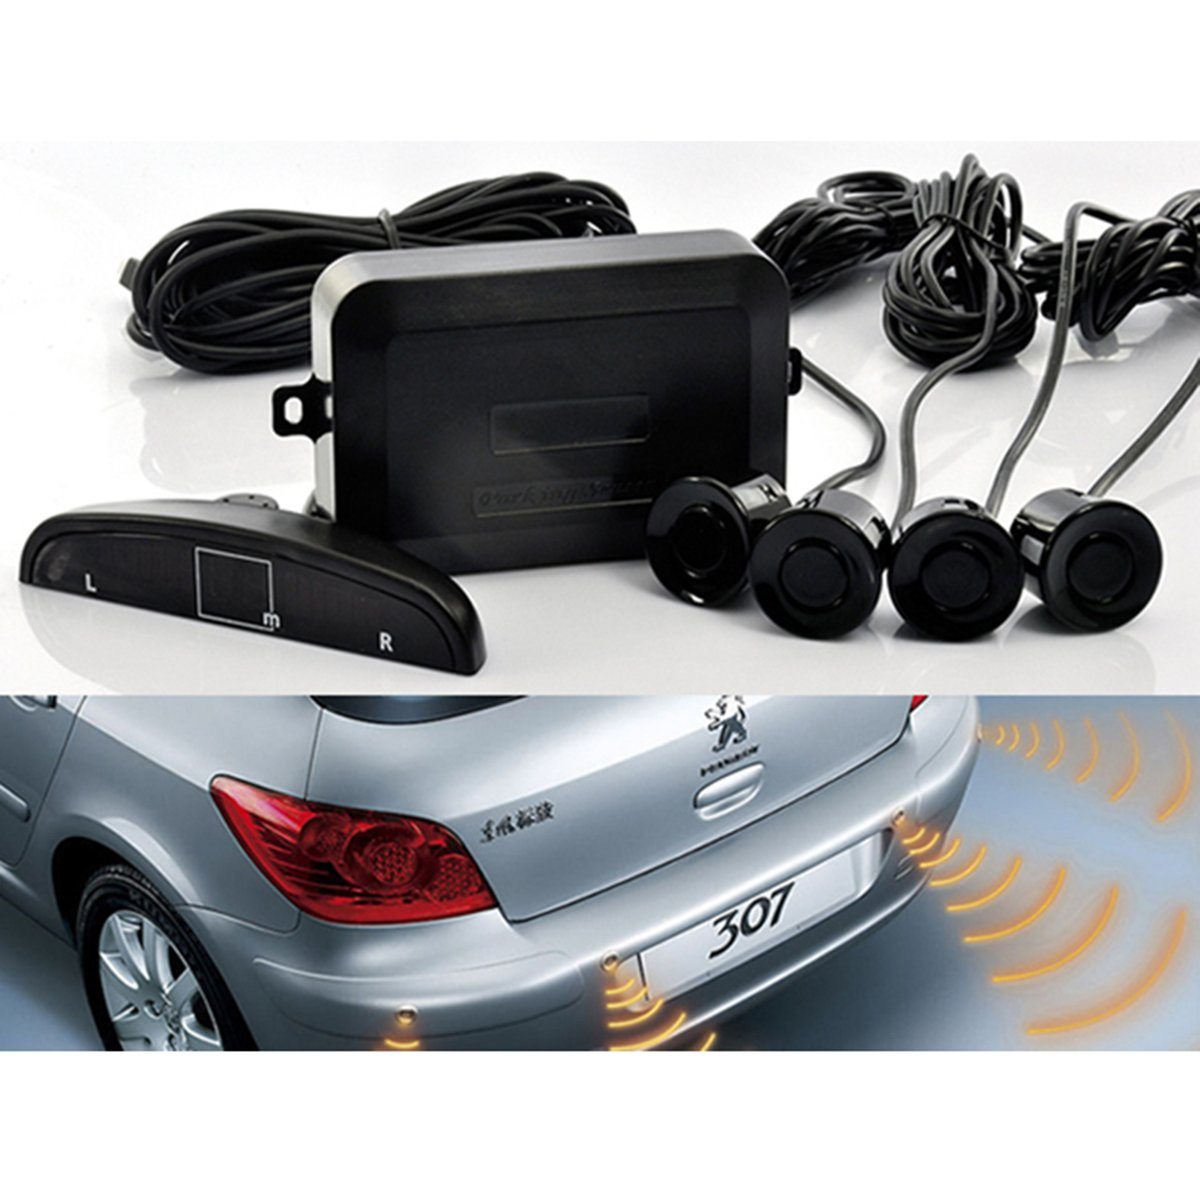 Sound Warning Silver Color EKYLIN Car Auto Vehicle Reverse Backup Radar System with 4 Parking Sensors Distance Detection LED Distance Display